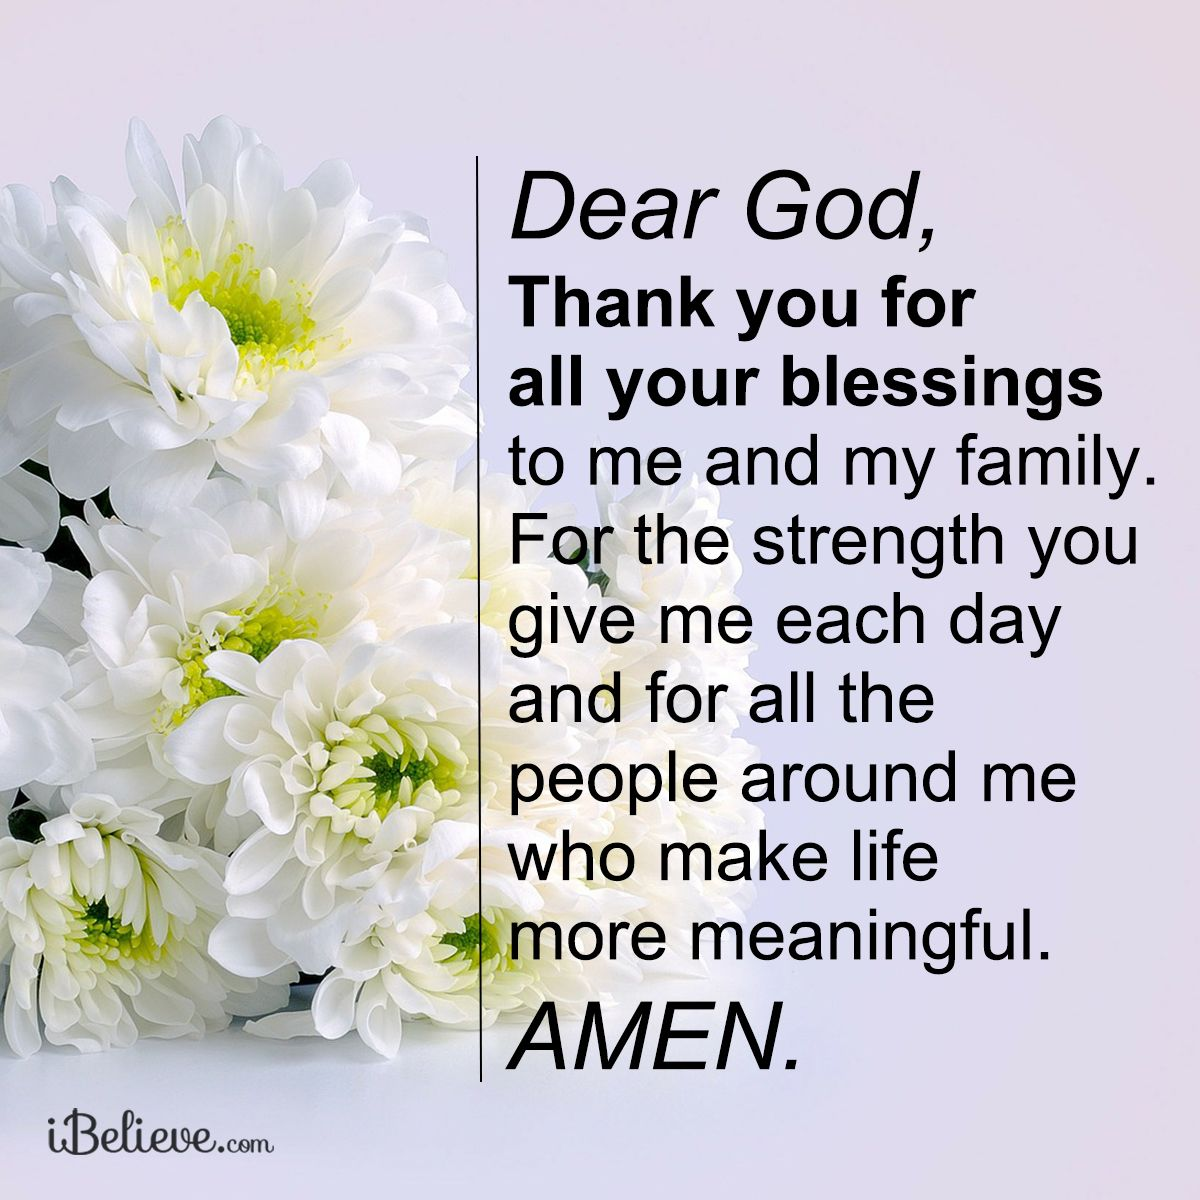 Dear God, Thank you for all your blessings to me and my ...